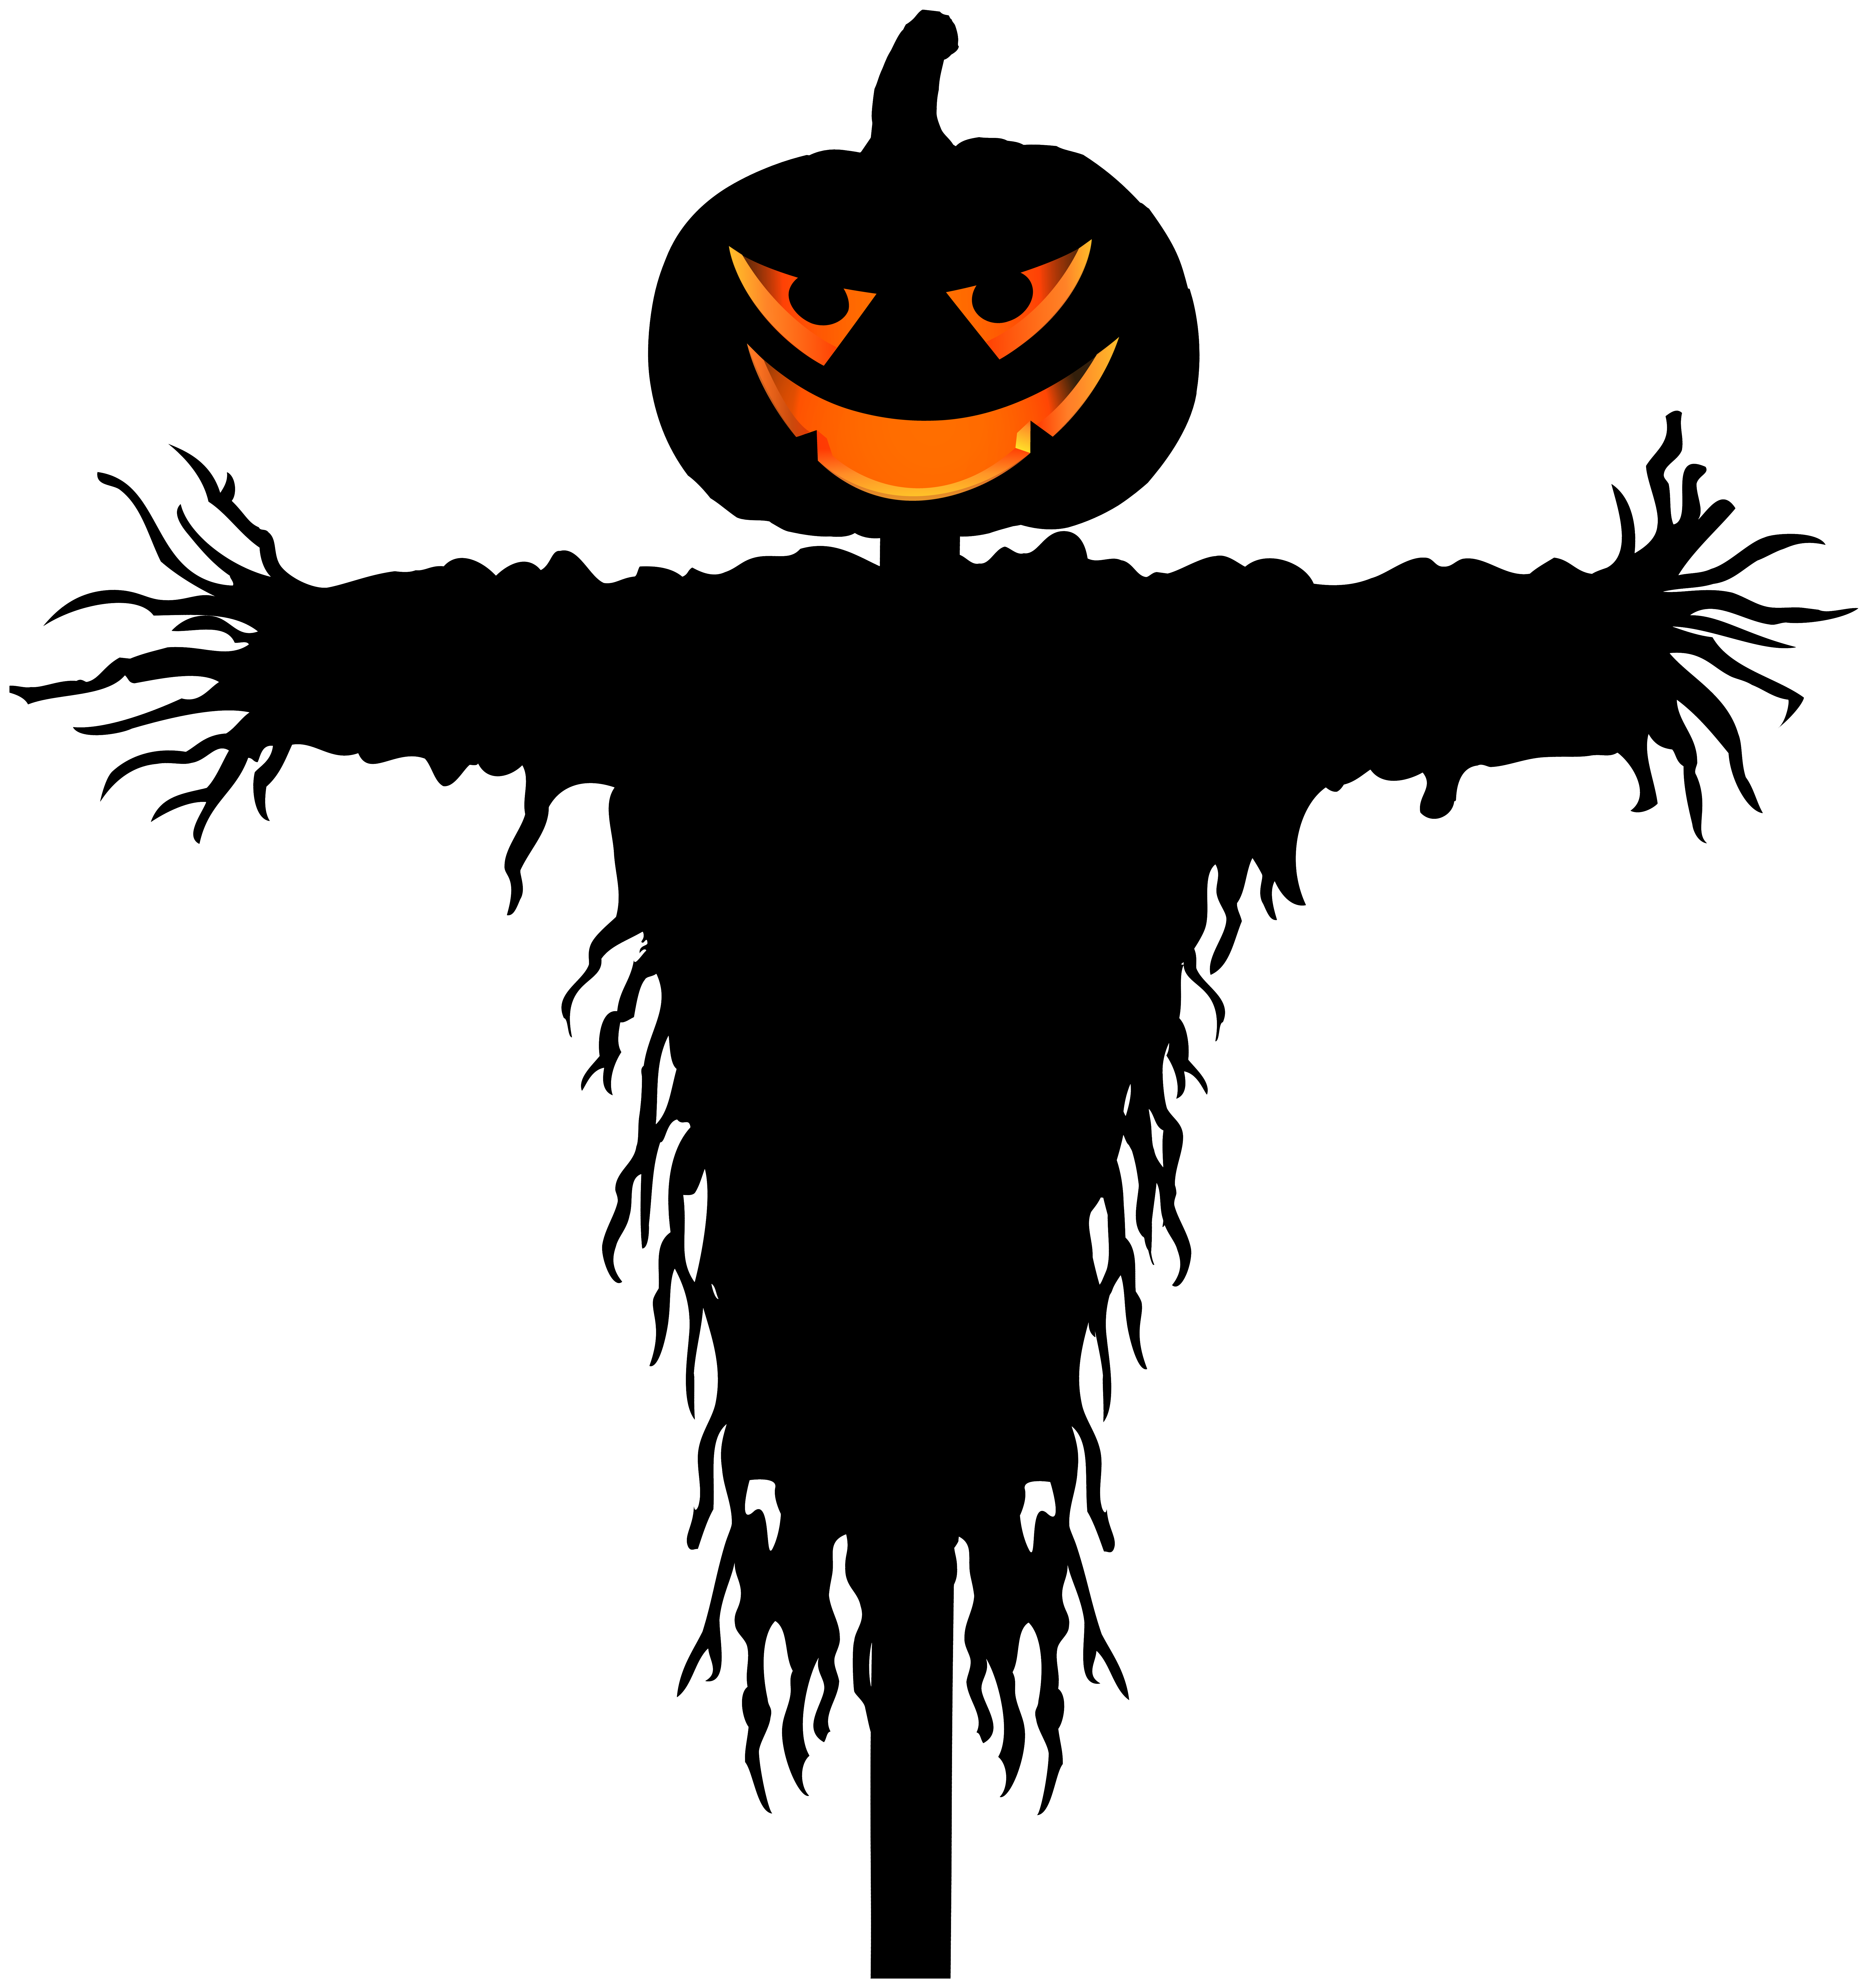 Png clip art image. Scarecrow clipart halloween